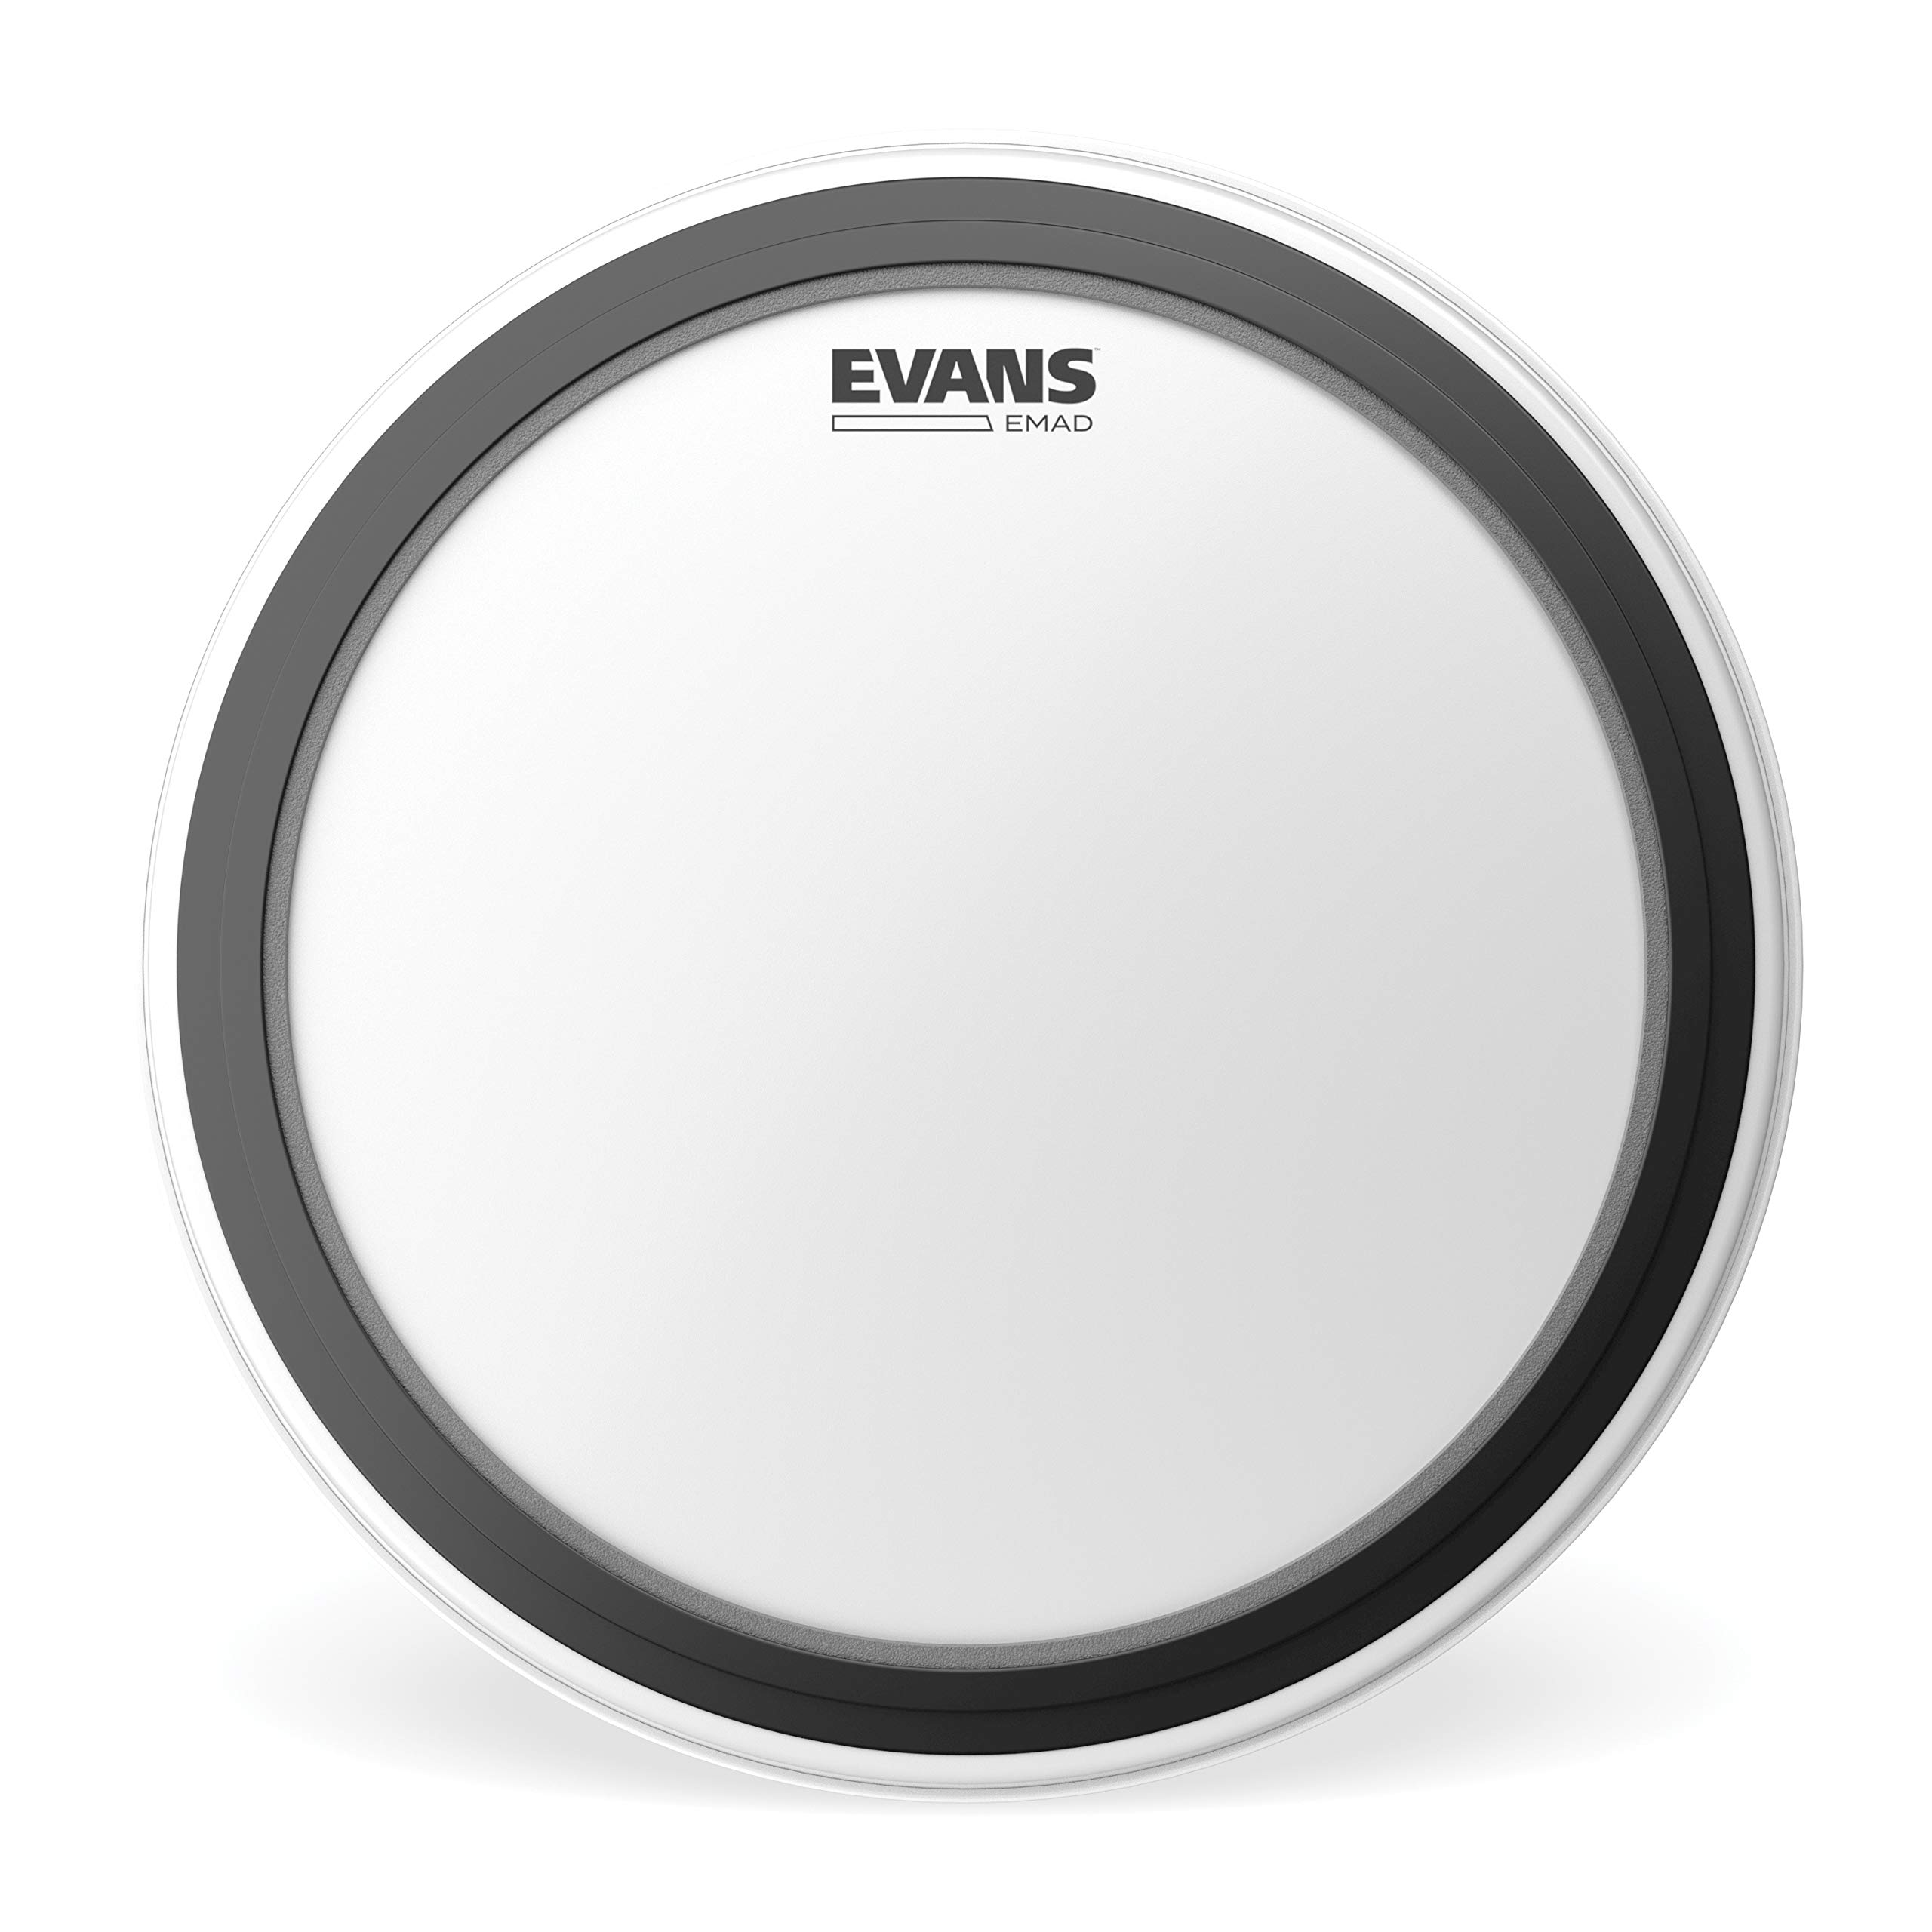 Evans EMAD Coated White Bass Drum Head, 22 Inch by Evans